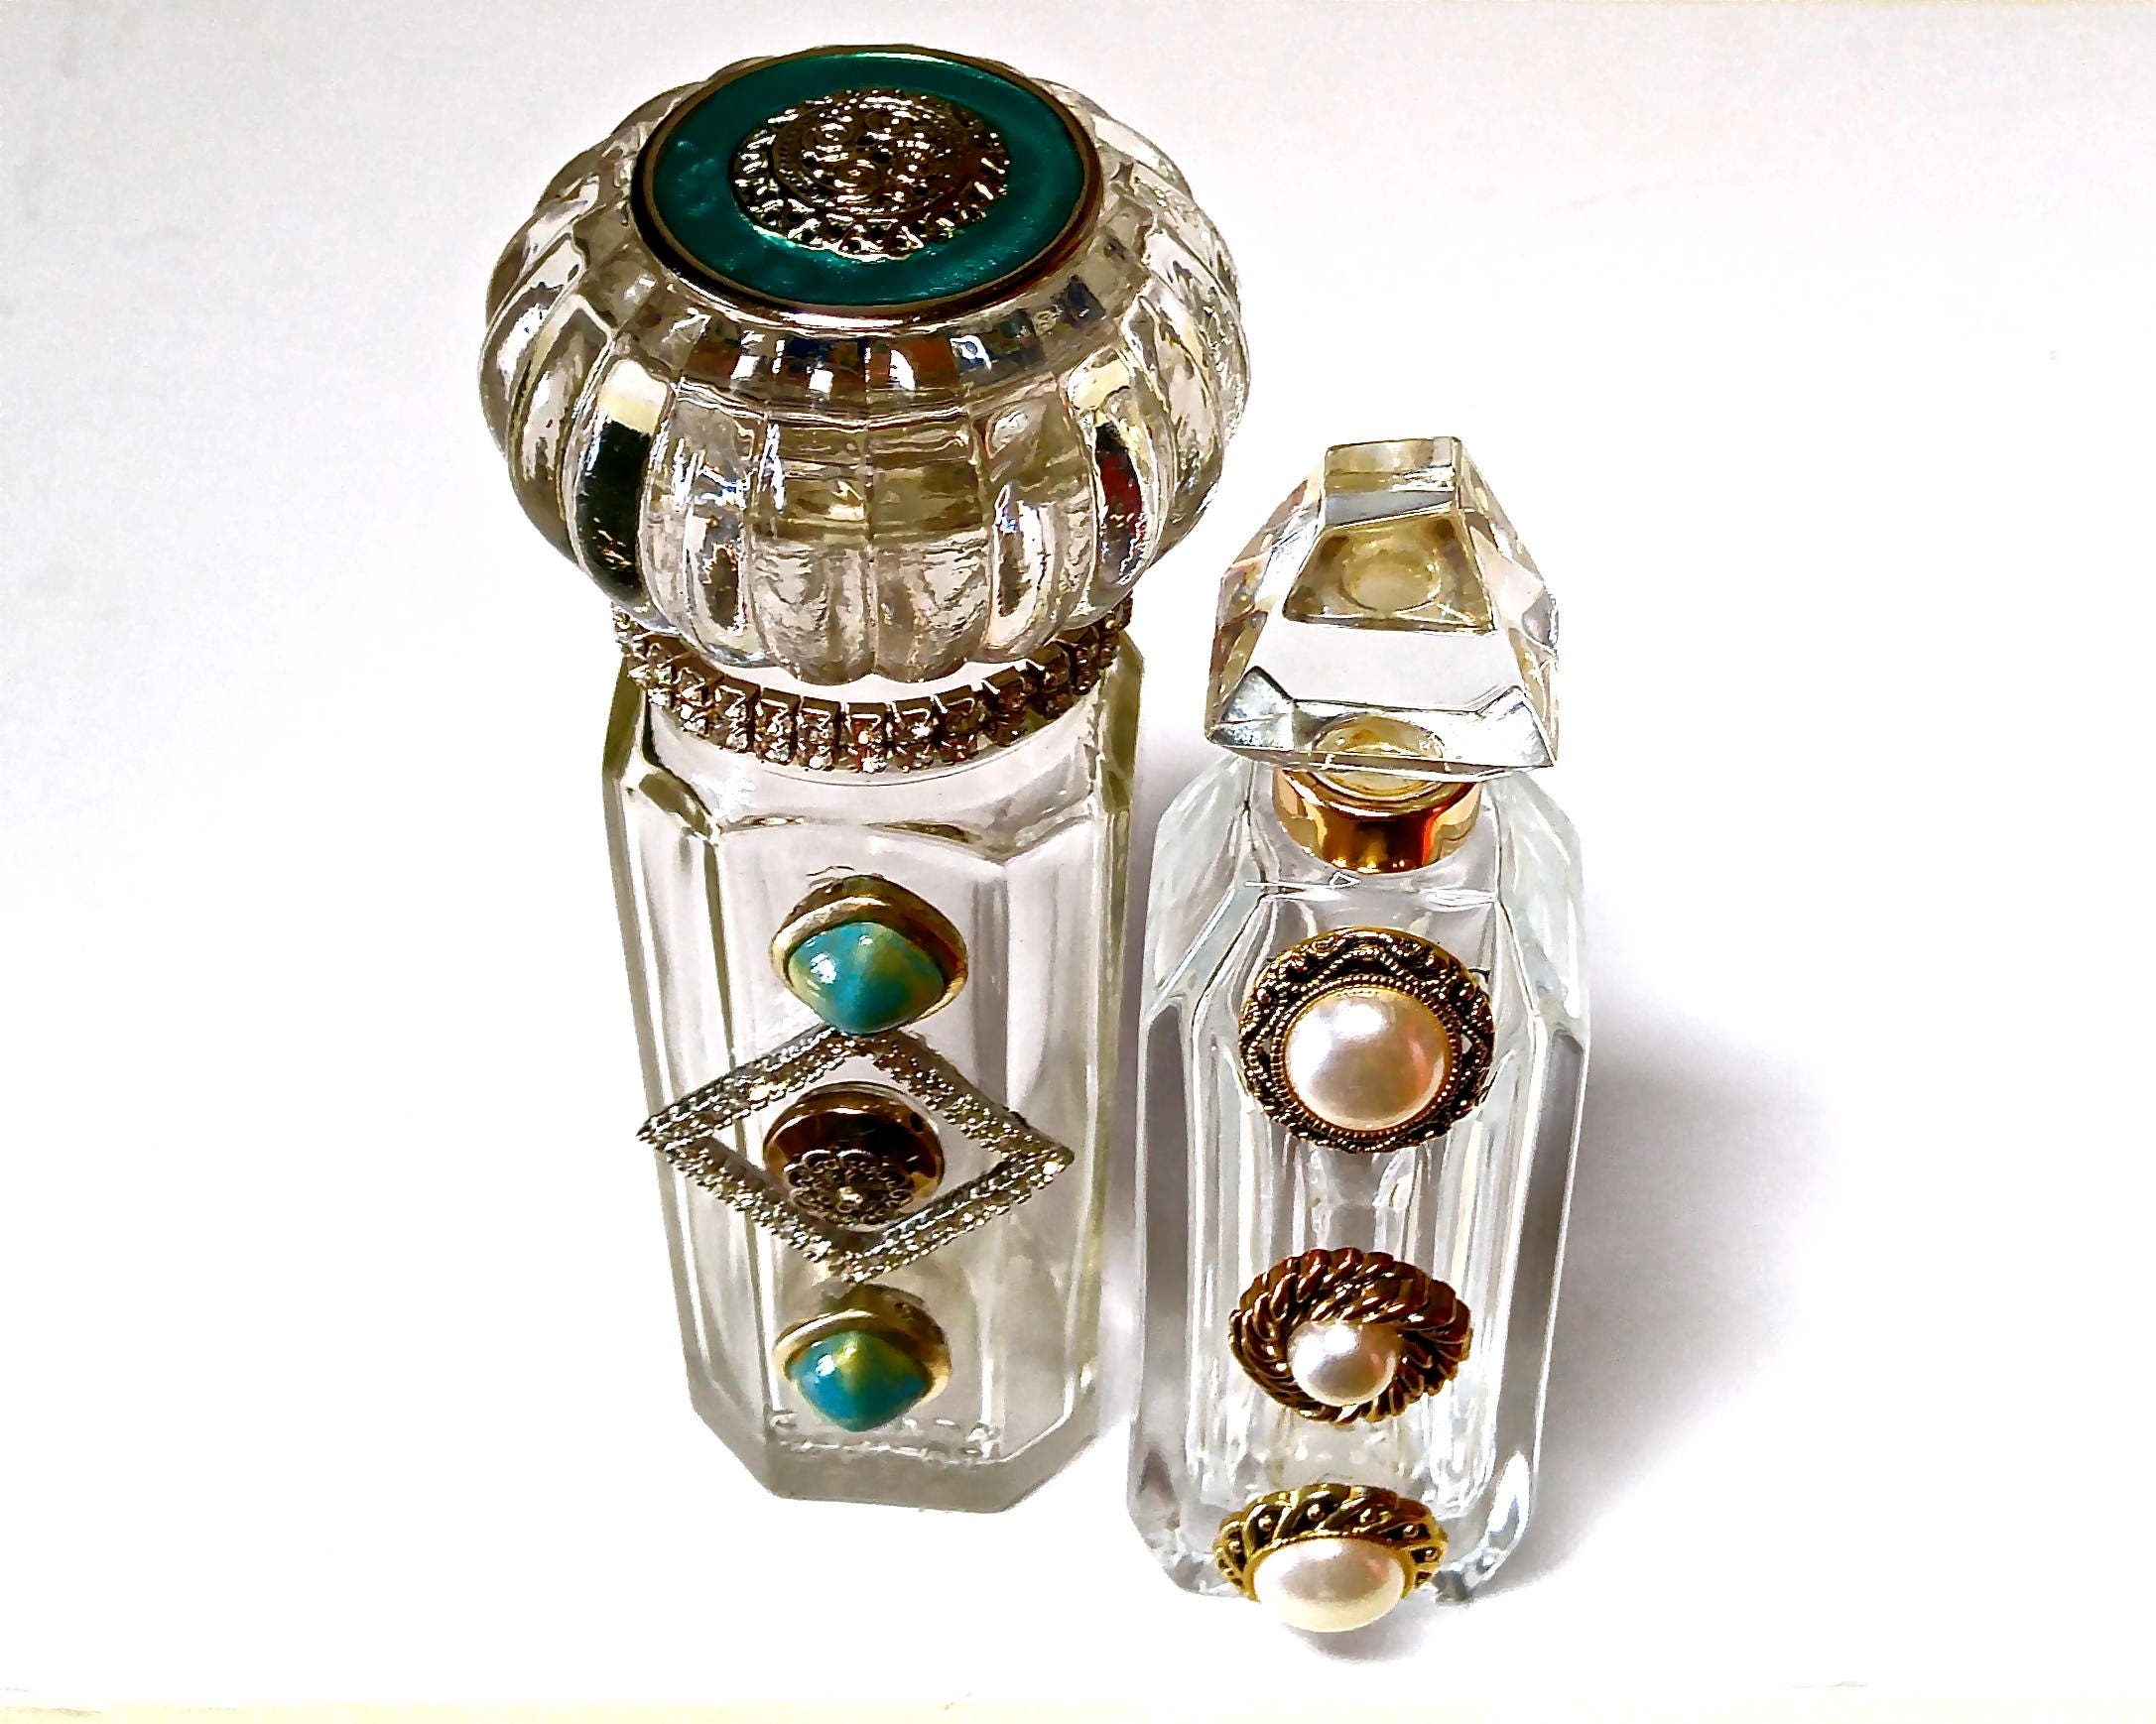 jewelry decorated glass bottles upcycled rustic home accents. Black Bedroom Furniture Sets. Home Design Ideas